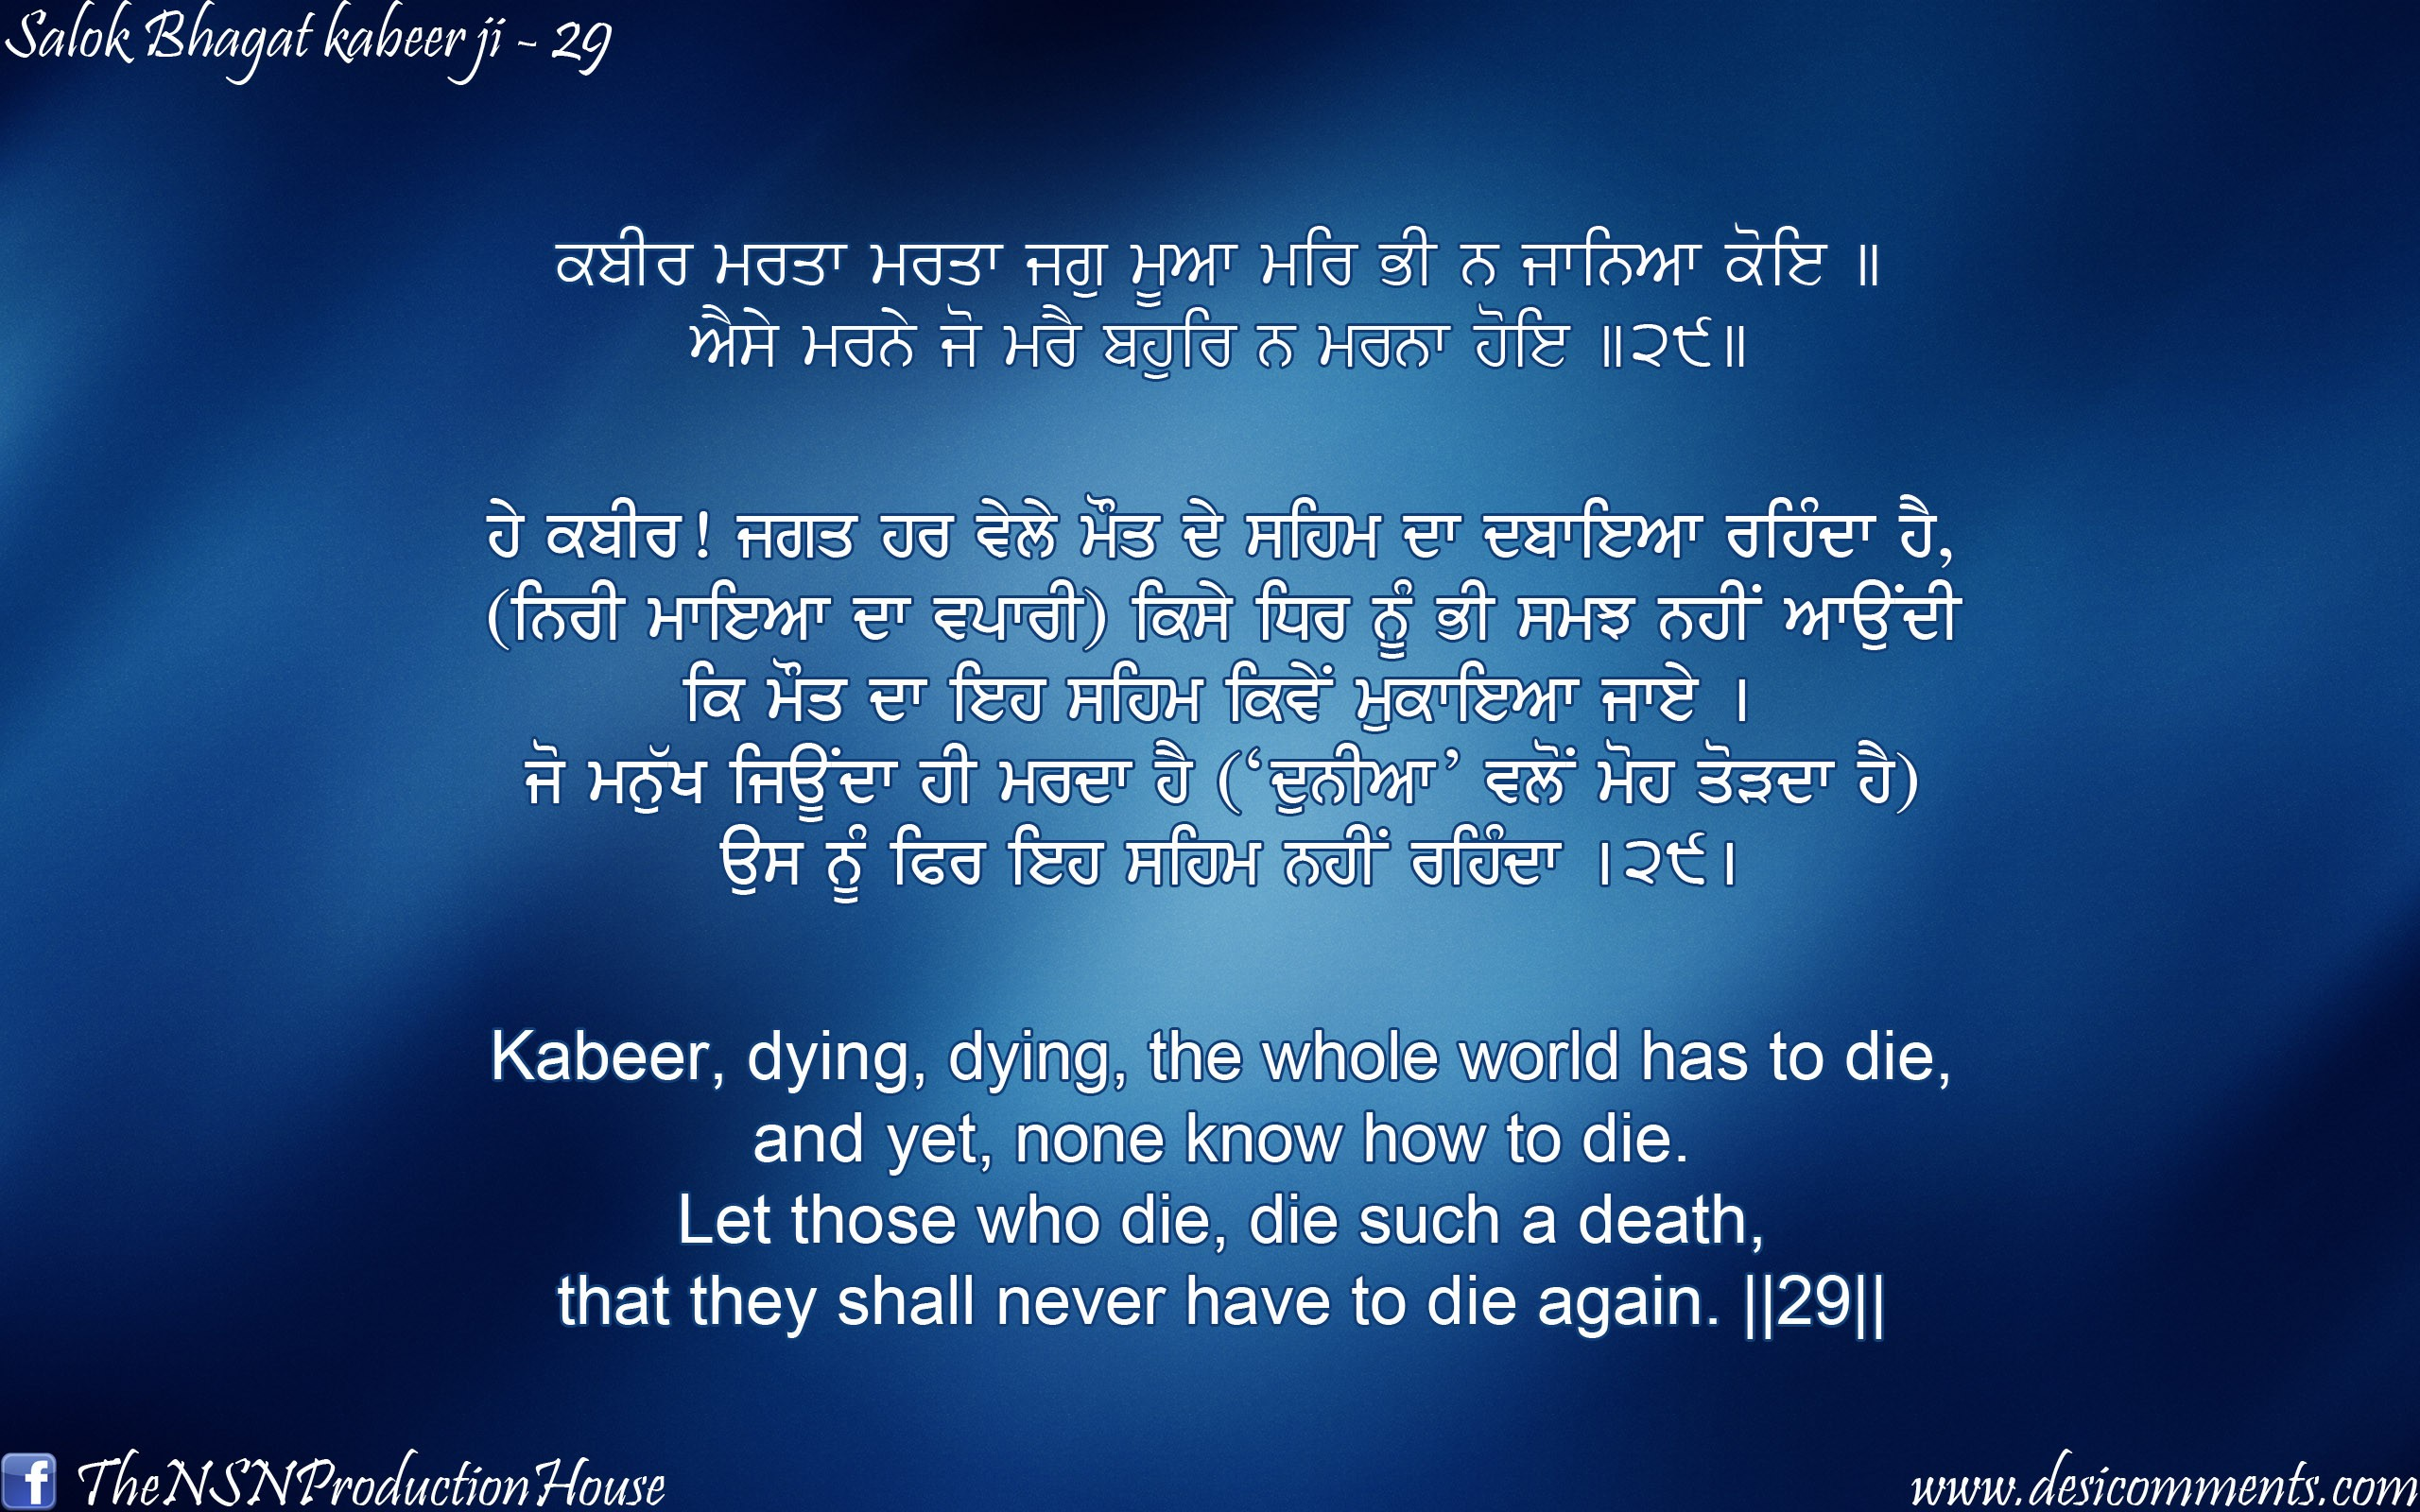 Sri Guru Granth Sahib Raags Index - Author Bhagat Kabir